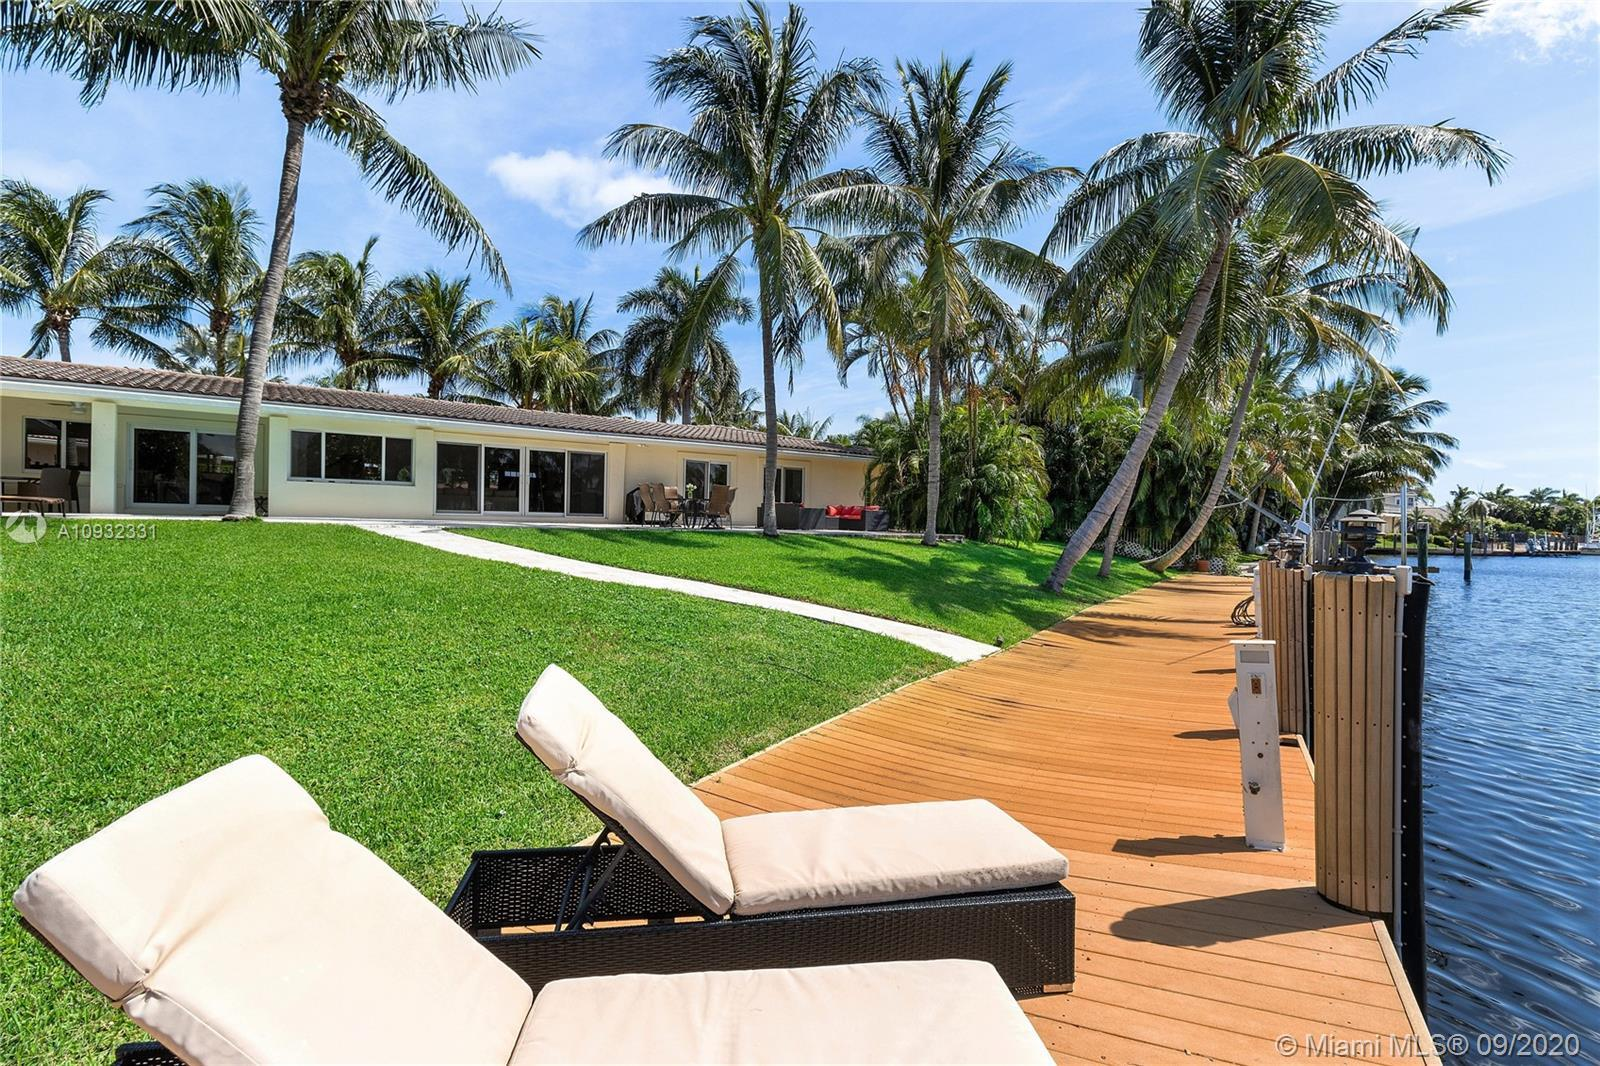 Perched above the Kingfisher canal, this extraordinary property on a rare oversized, deep-water lot